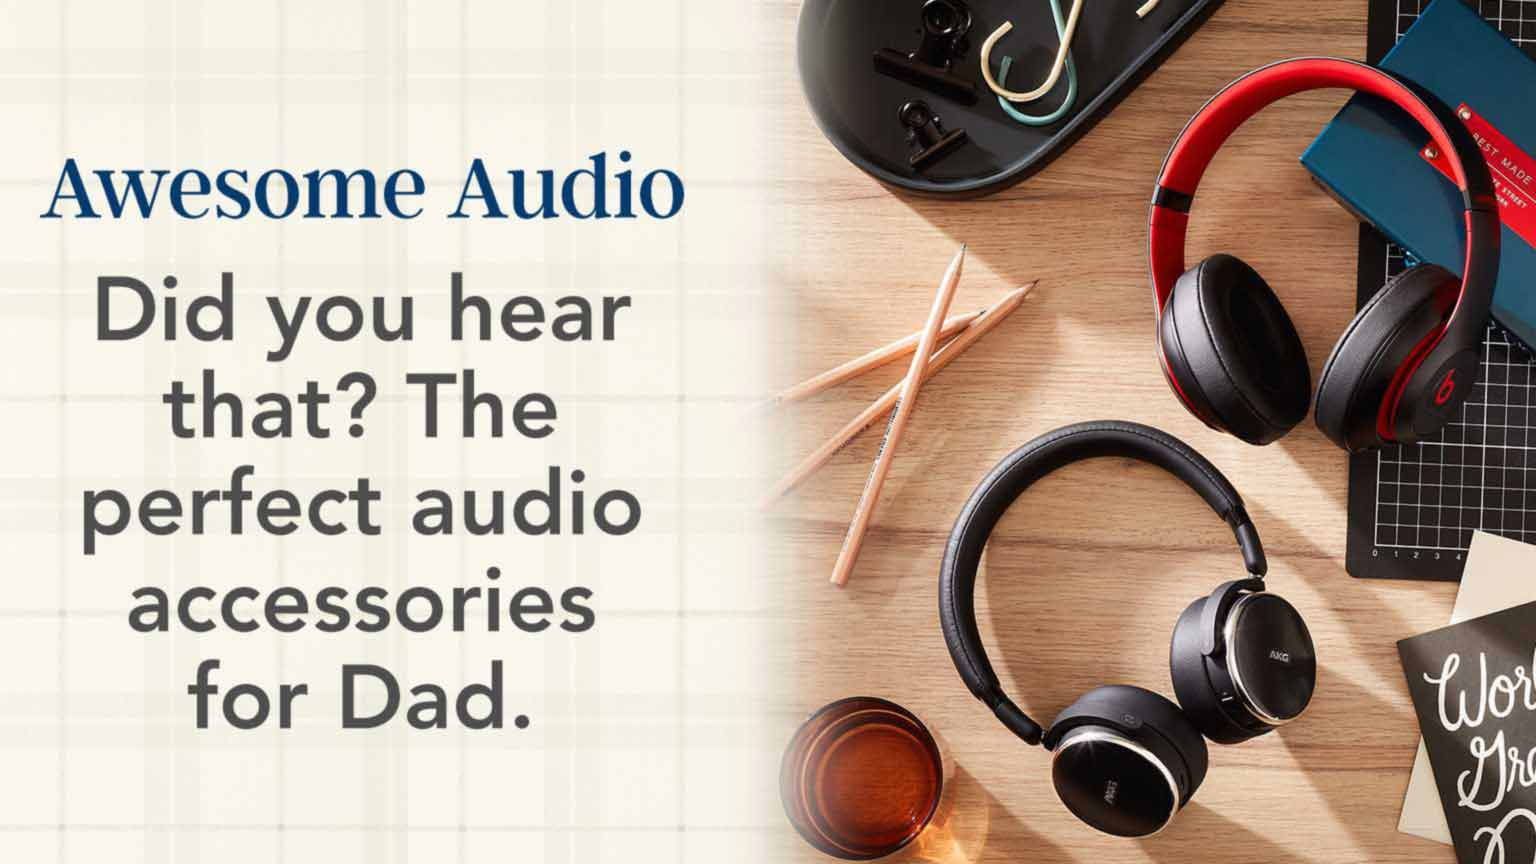 Fathers Day - Awesome Audio